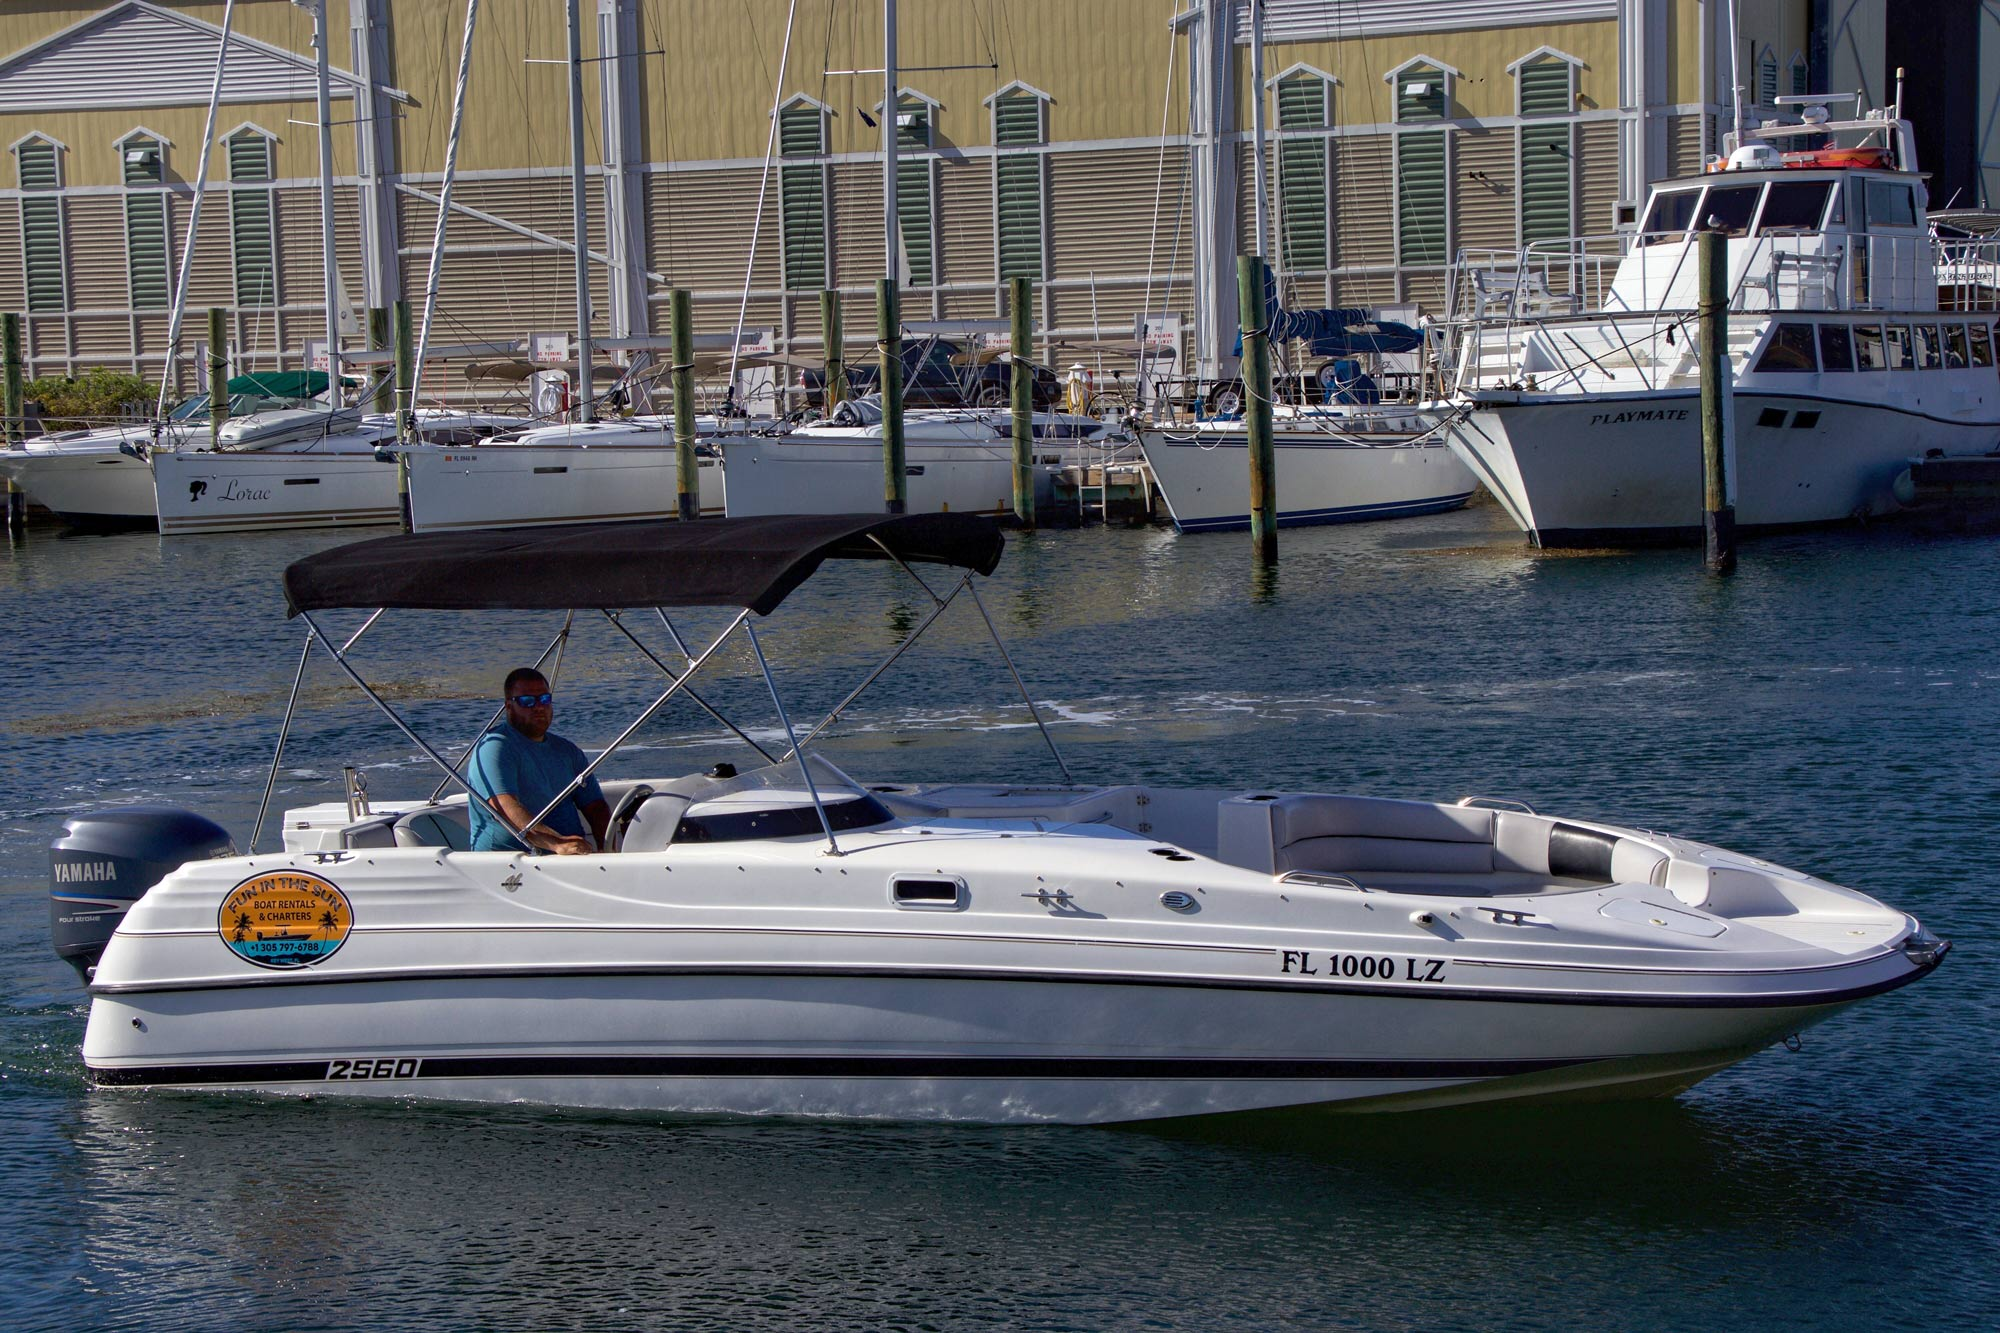 26 foot Deck Boat powered by a 225 horse power Yamaha four stroke